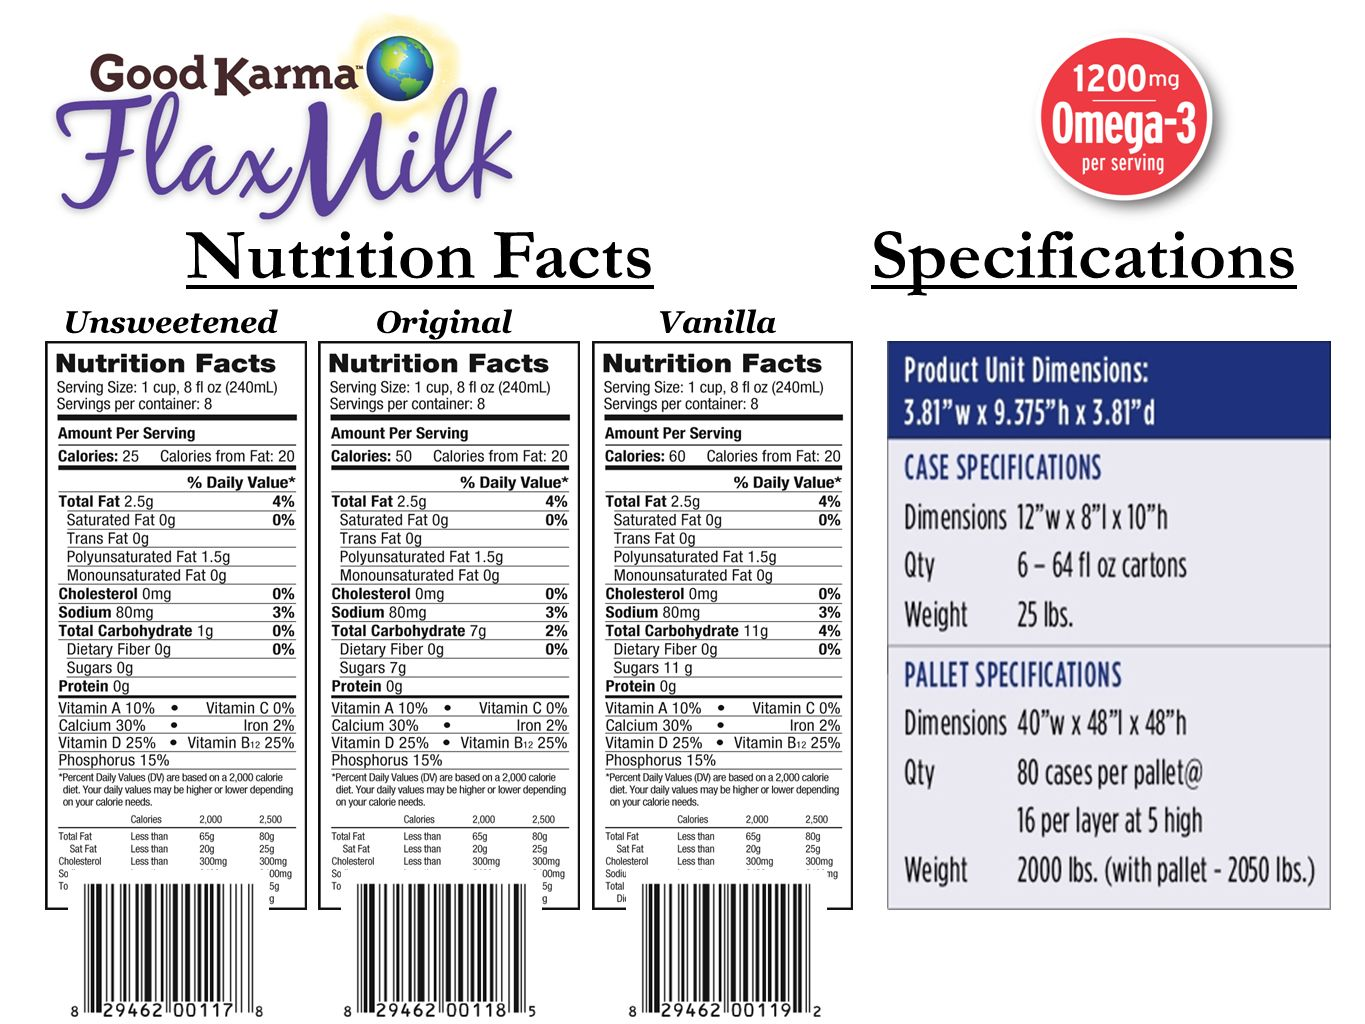 Nutrition Facts Specifications